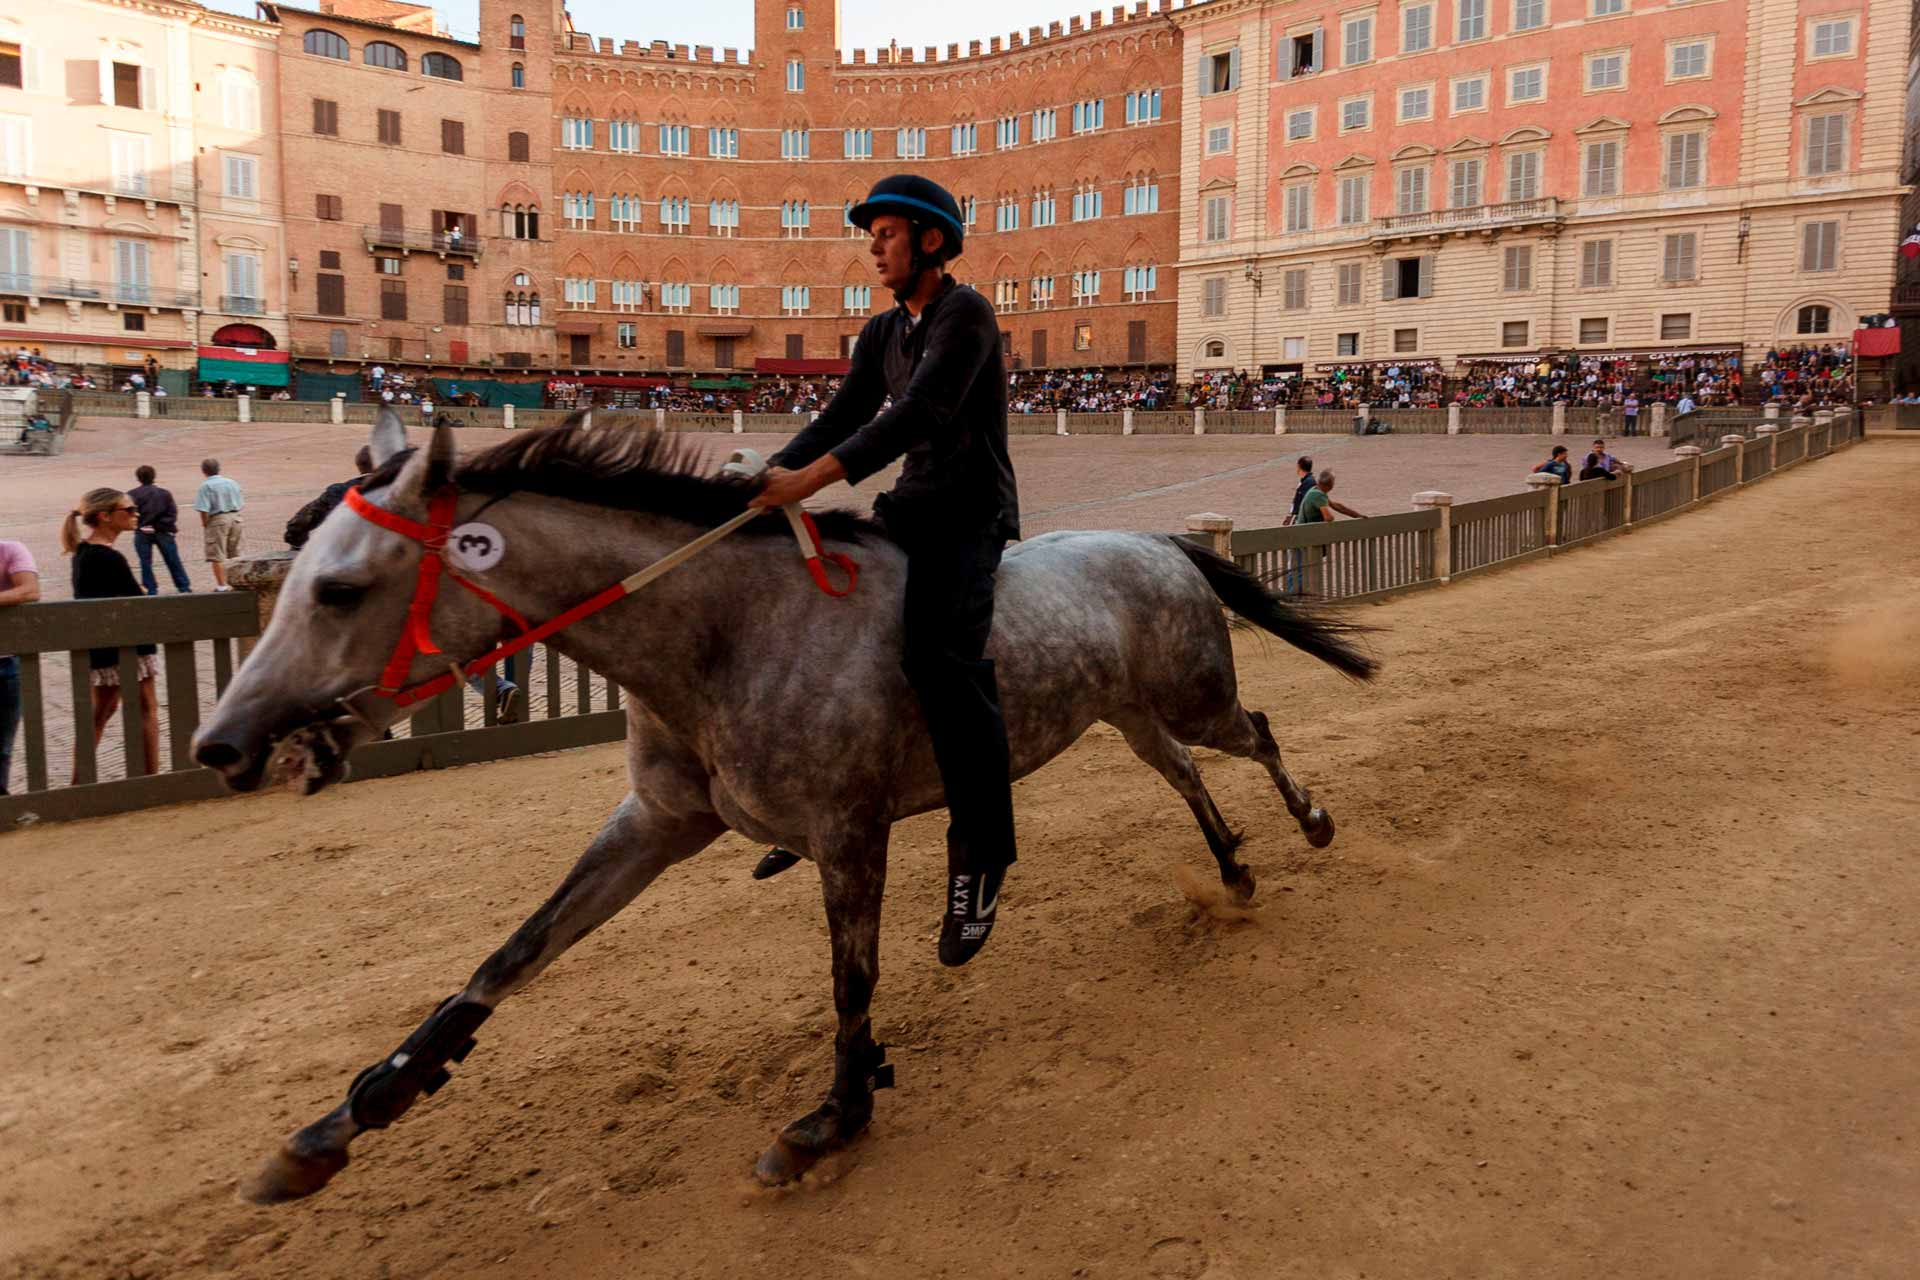 THE NIGHT RACES - The ?Night Trial? is the first opportunity offered to the horses to try the competition ground where only ten of them will compete on the day of the Palio.